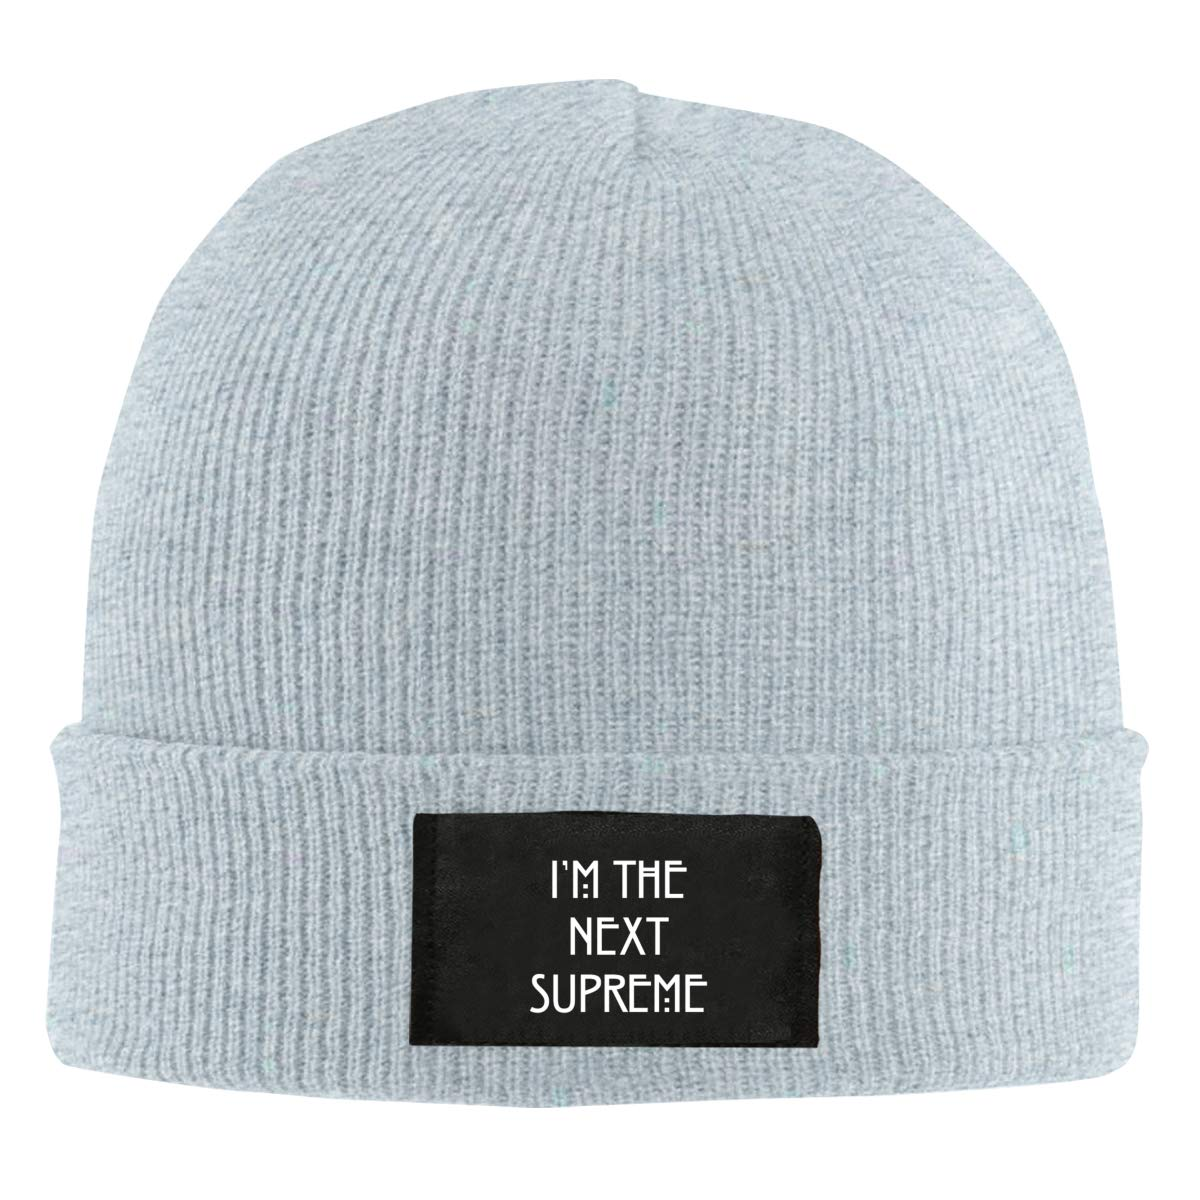 b1cf2c35ac0 Amazon.com  I m The Next Supreme Wool Knitted Hats Beanie Caps Unisex  Slouchy Winter  Clothing